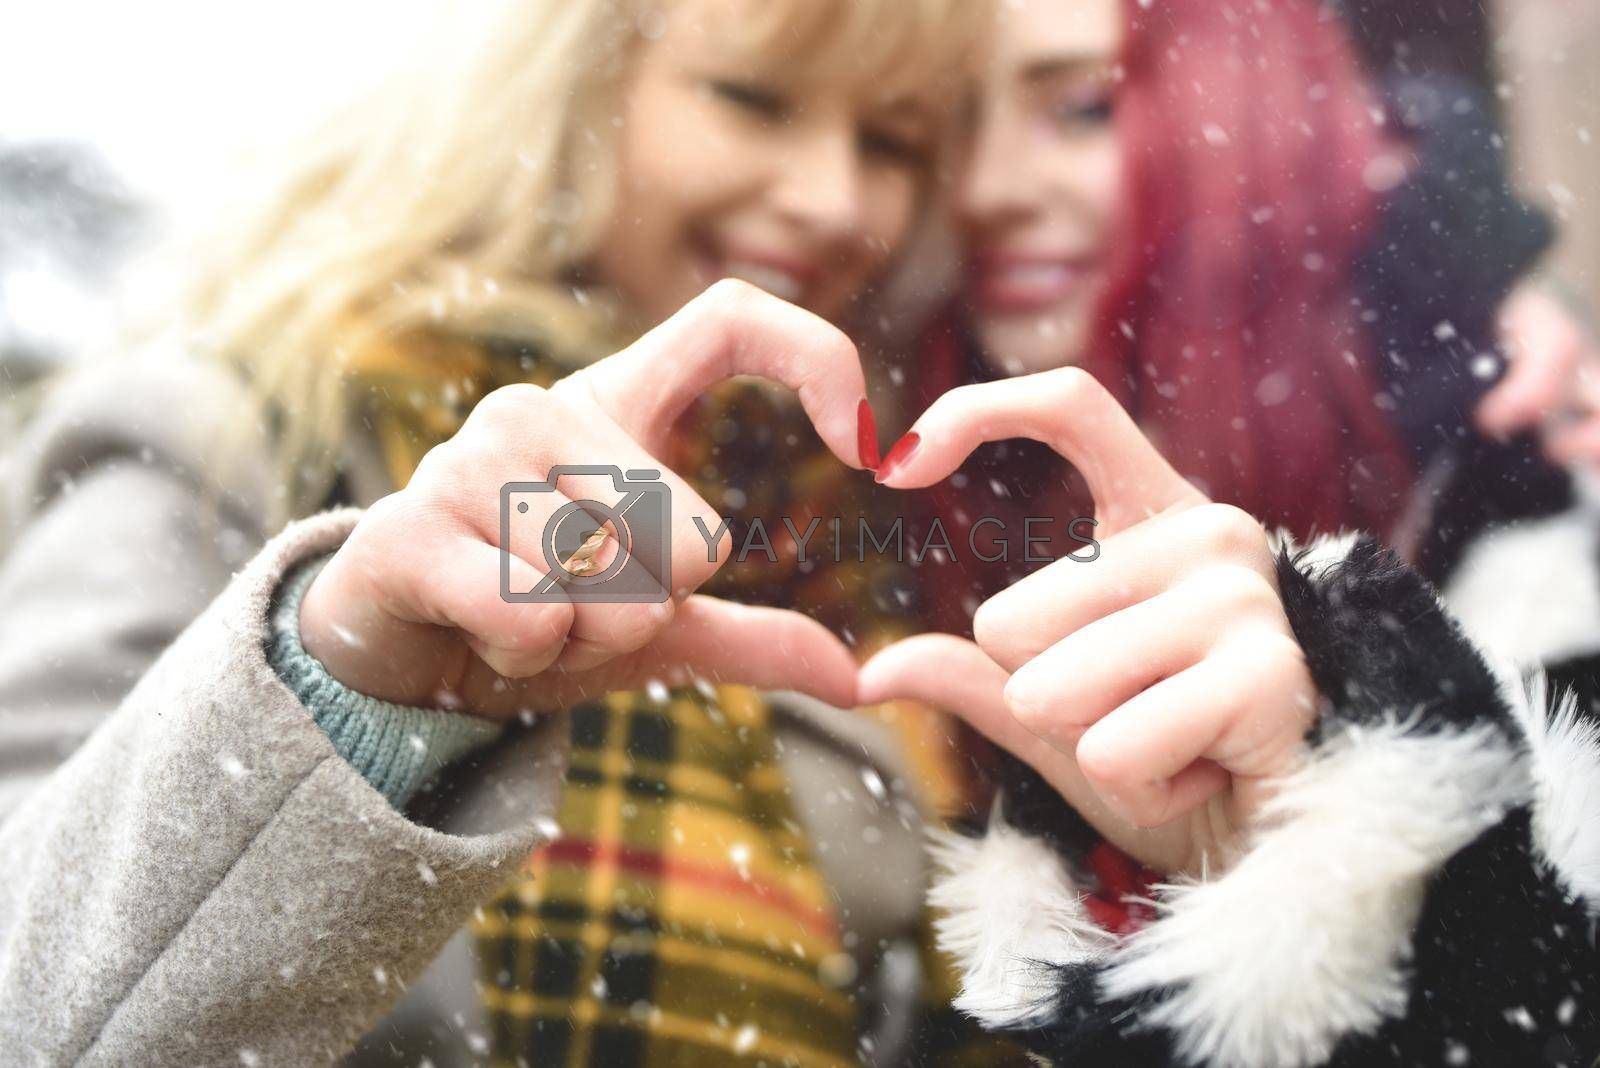 Lesbian couple making heart with hands, open relationship in love. love concept. friendship concept. snowy effect